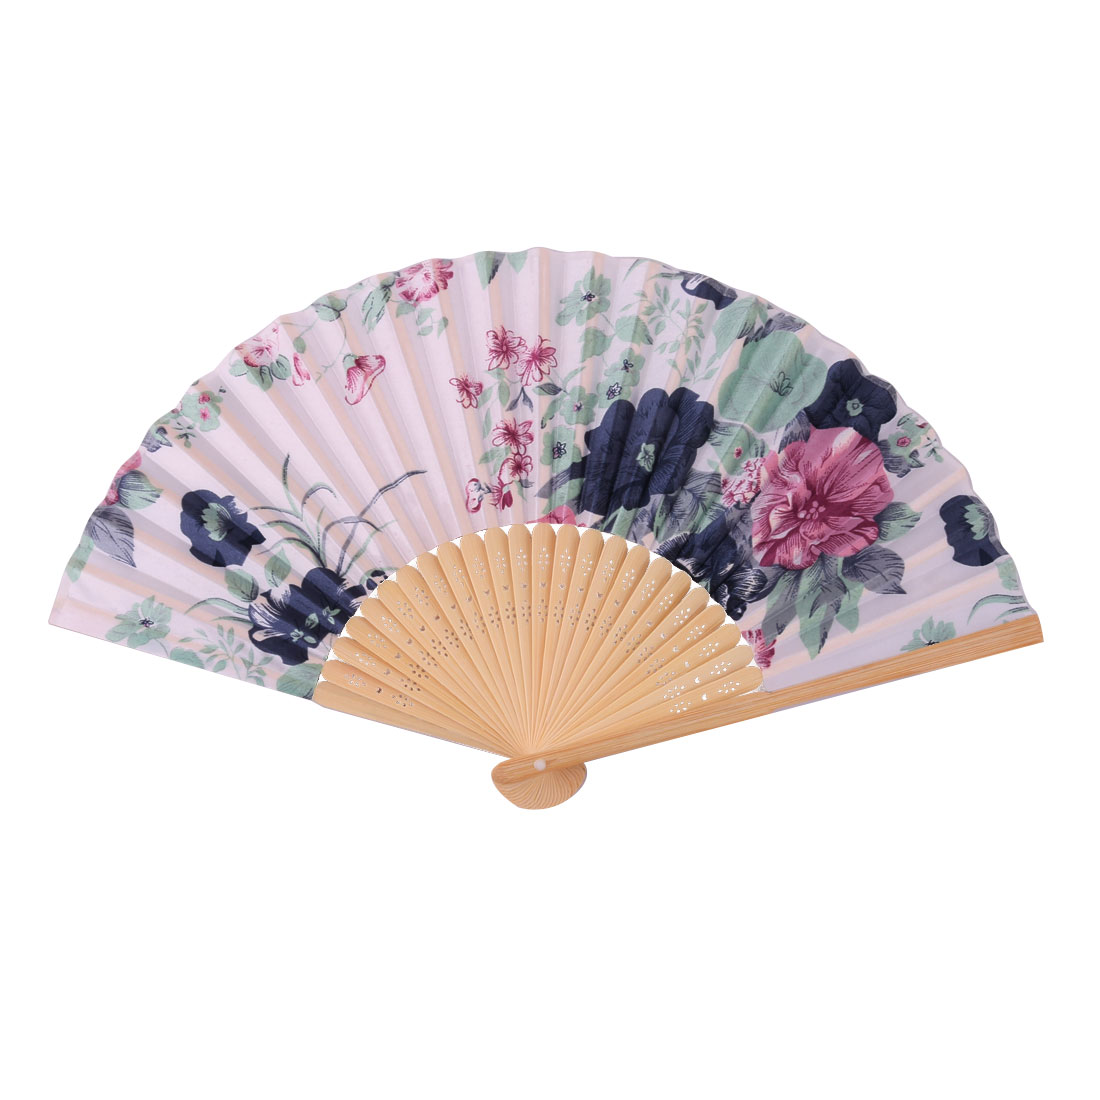 Wedding Party Bamboo Frame Flower Pattern Decorative Folding Dancing Hand Fan Navy Blue